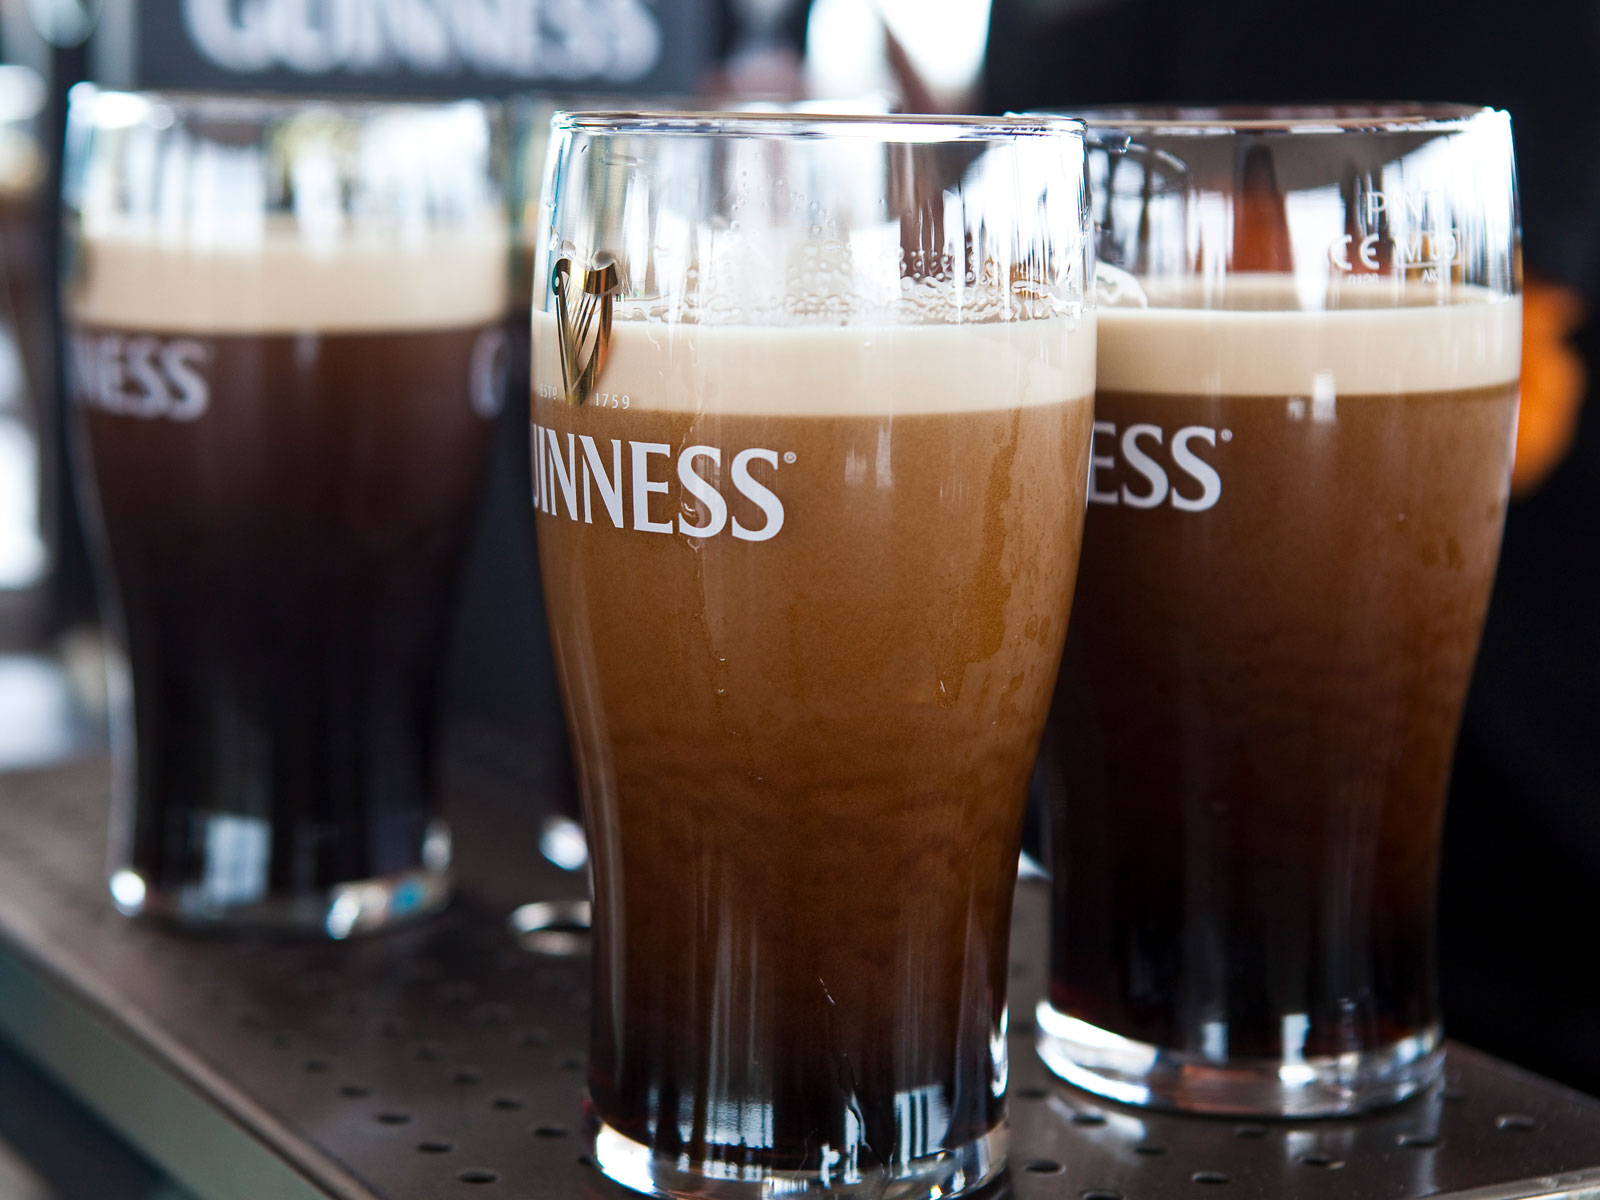 guinness-bubbles-study-FT-BLOG0519.jpg